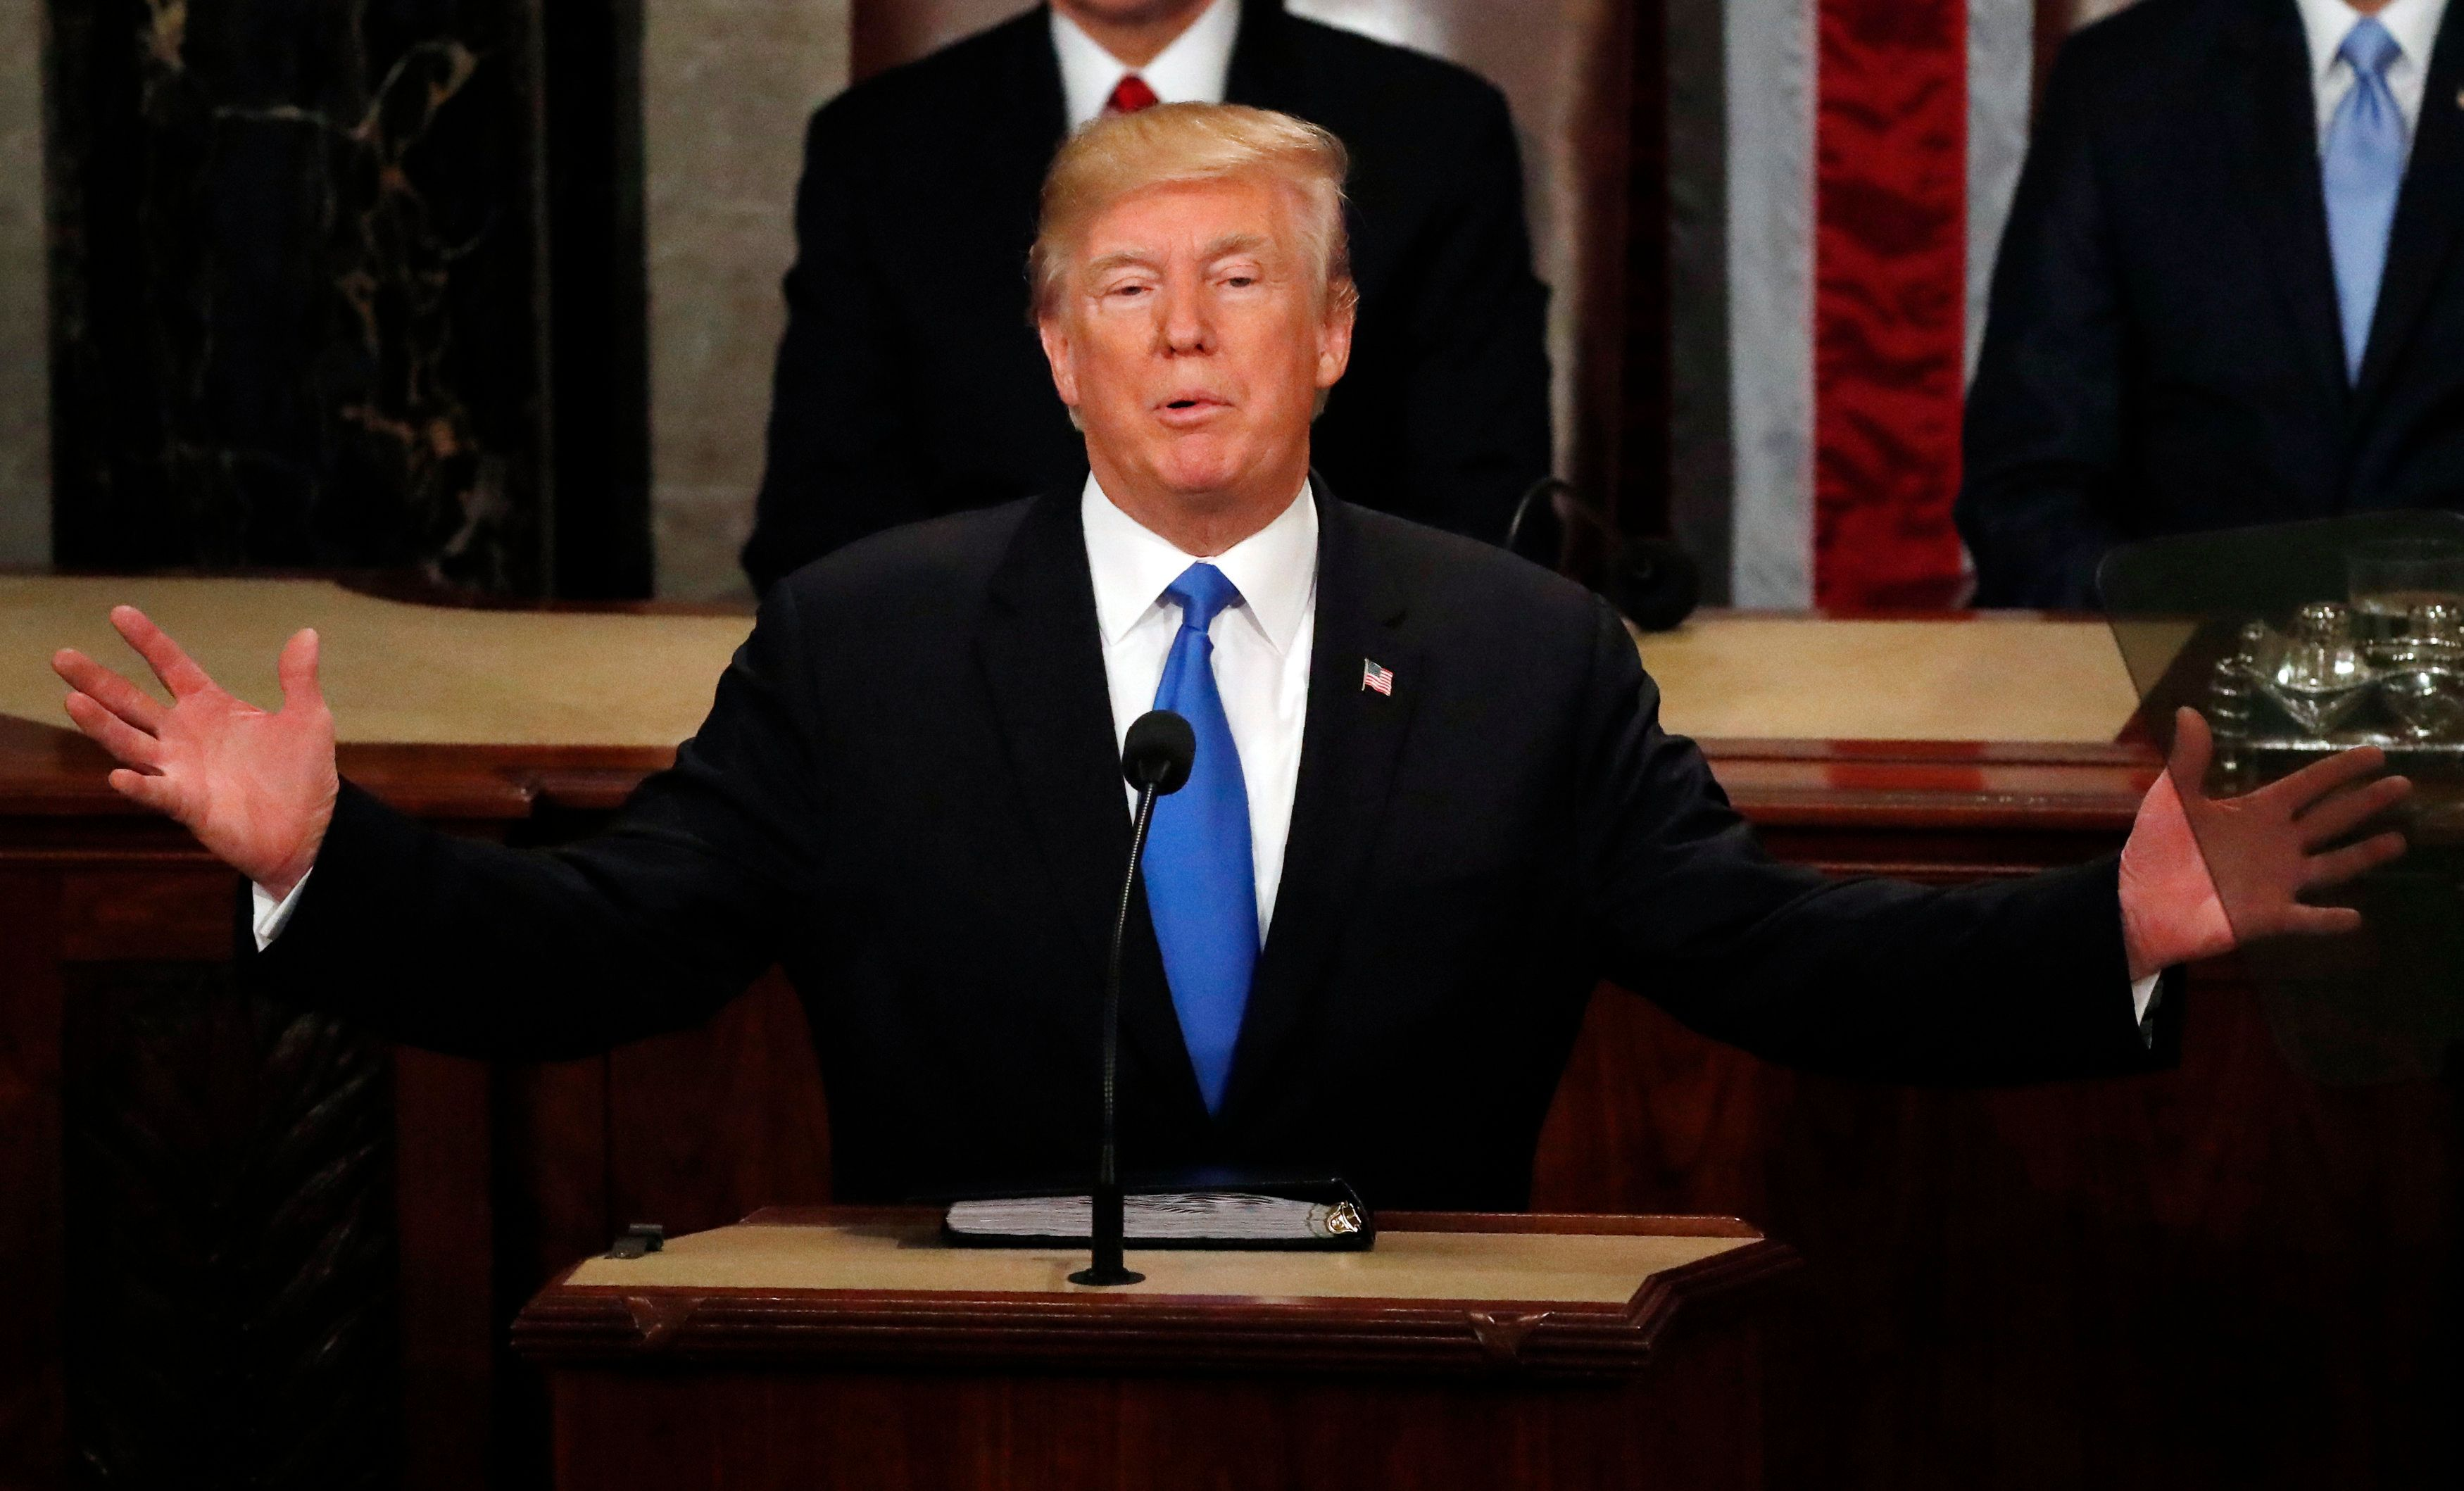 VERIFY | Was Trump's State of the Union the most-watched in history?